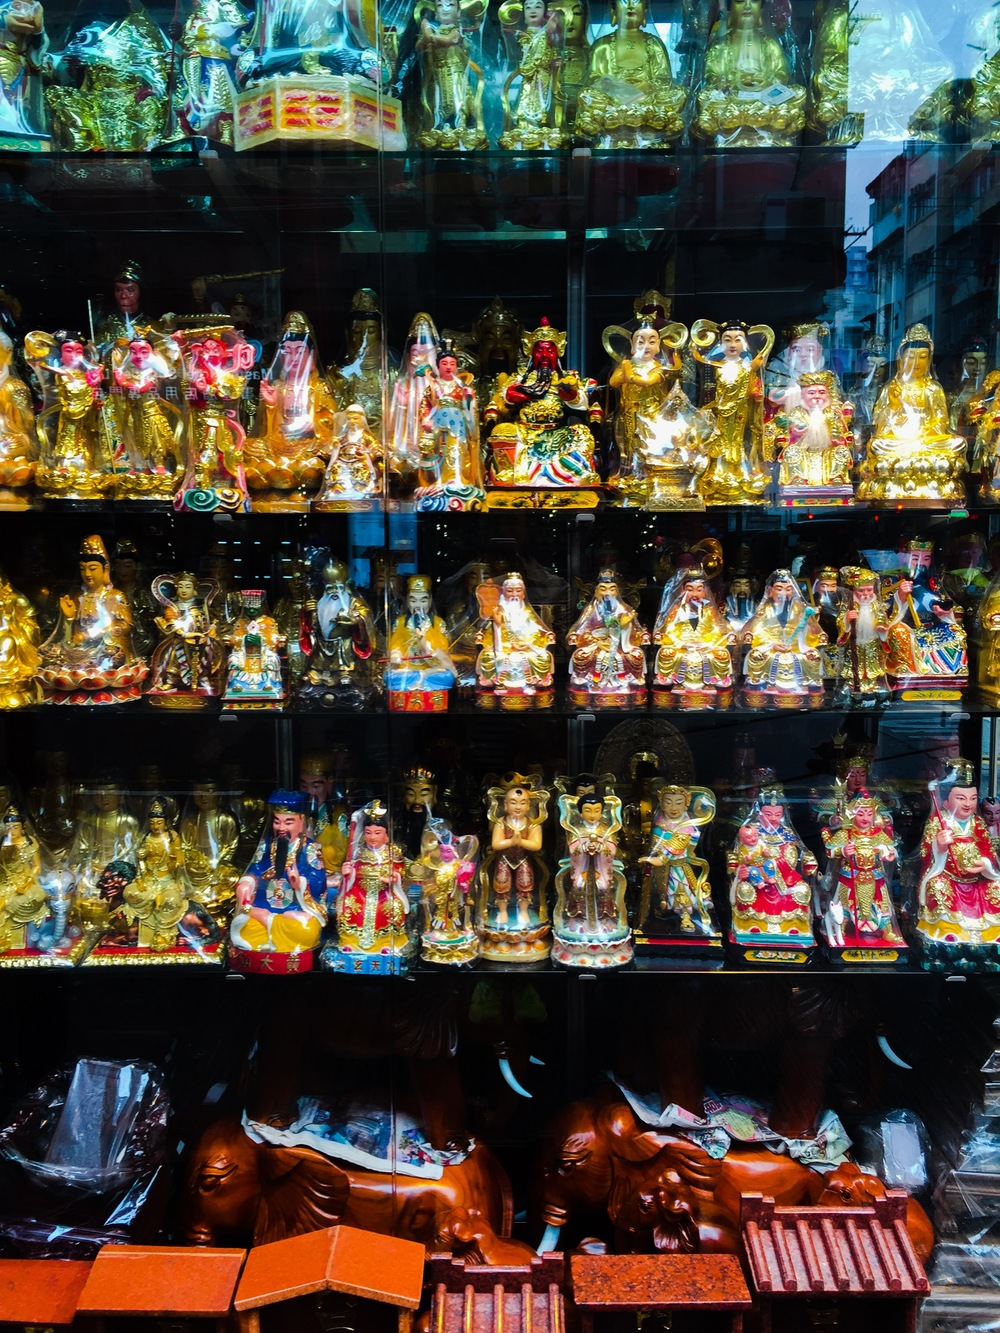 On the way to the Jade Market, window shopping for gold Buddhas...